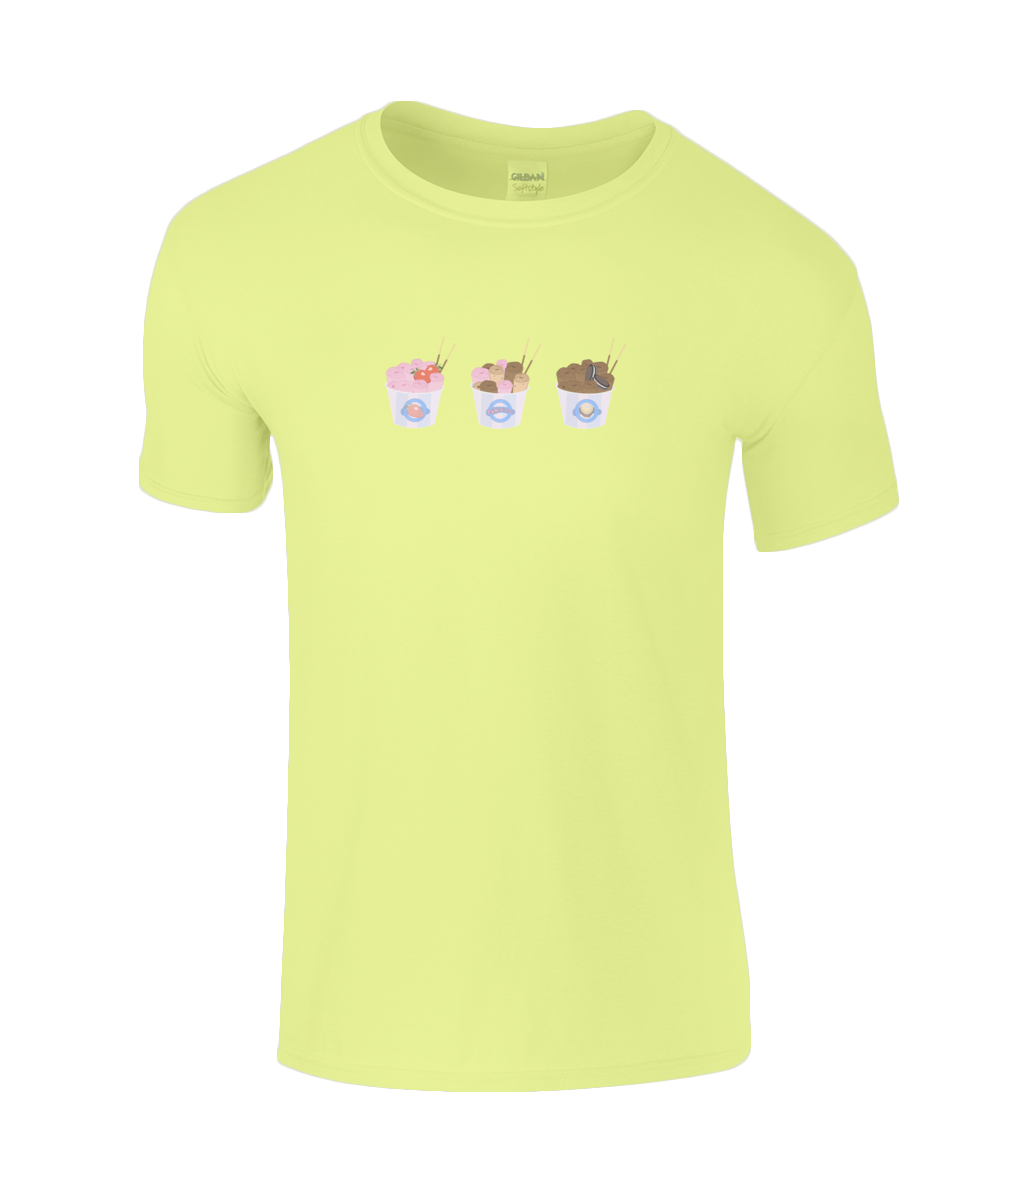 Kids ice cream t shirt